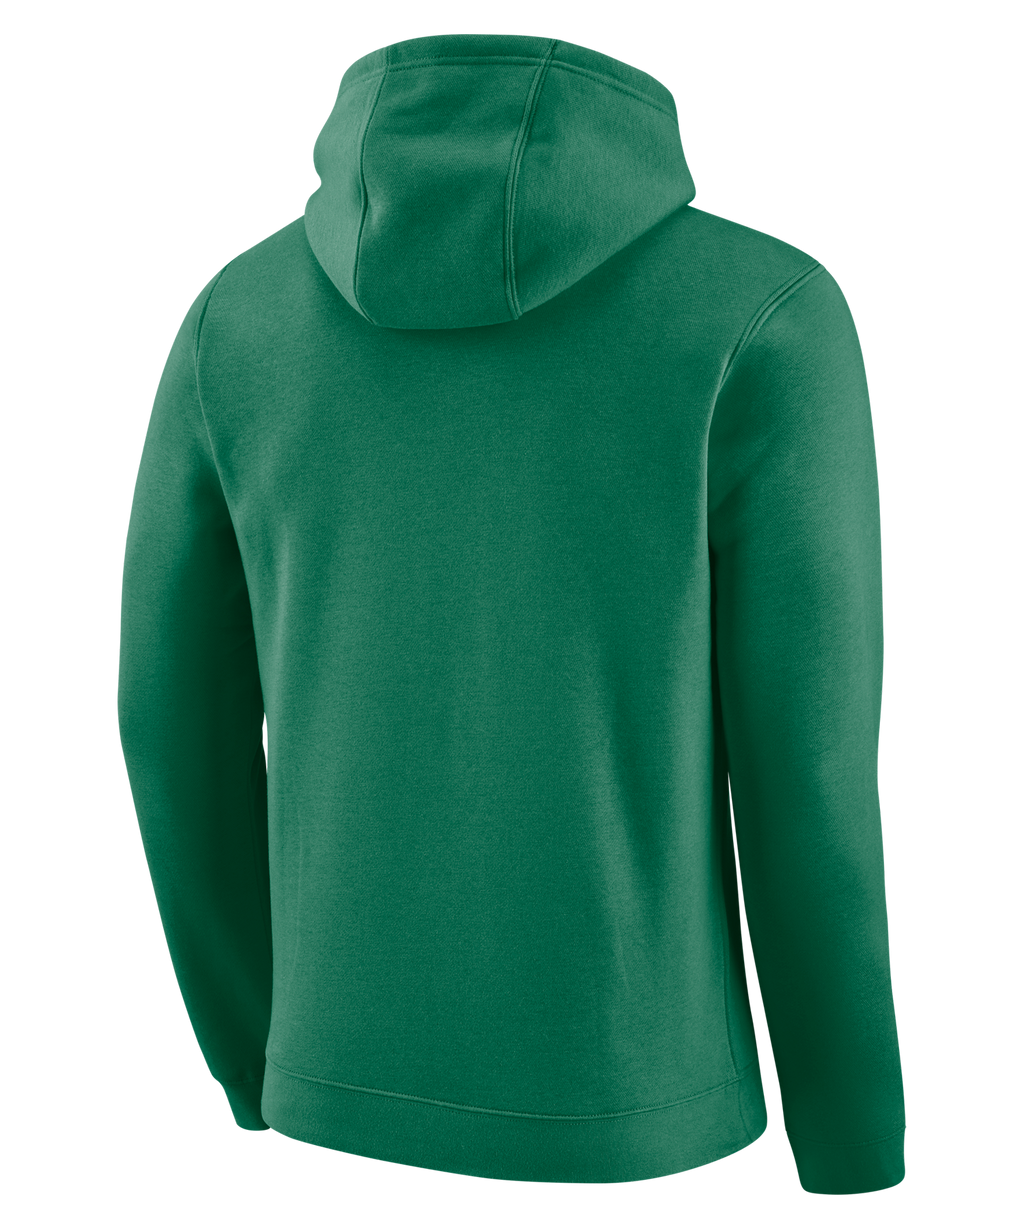 Boston Celtics Nike Dry City Edition Hoodie